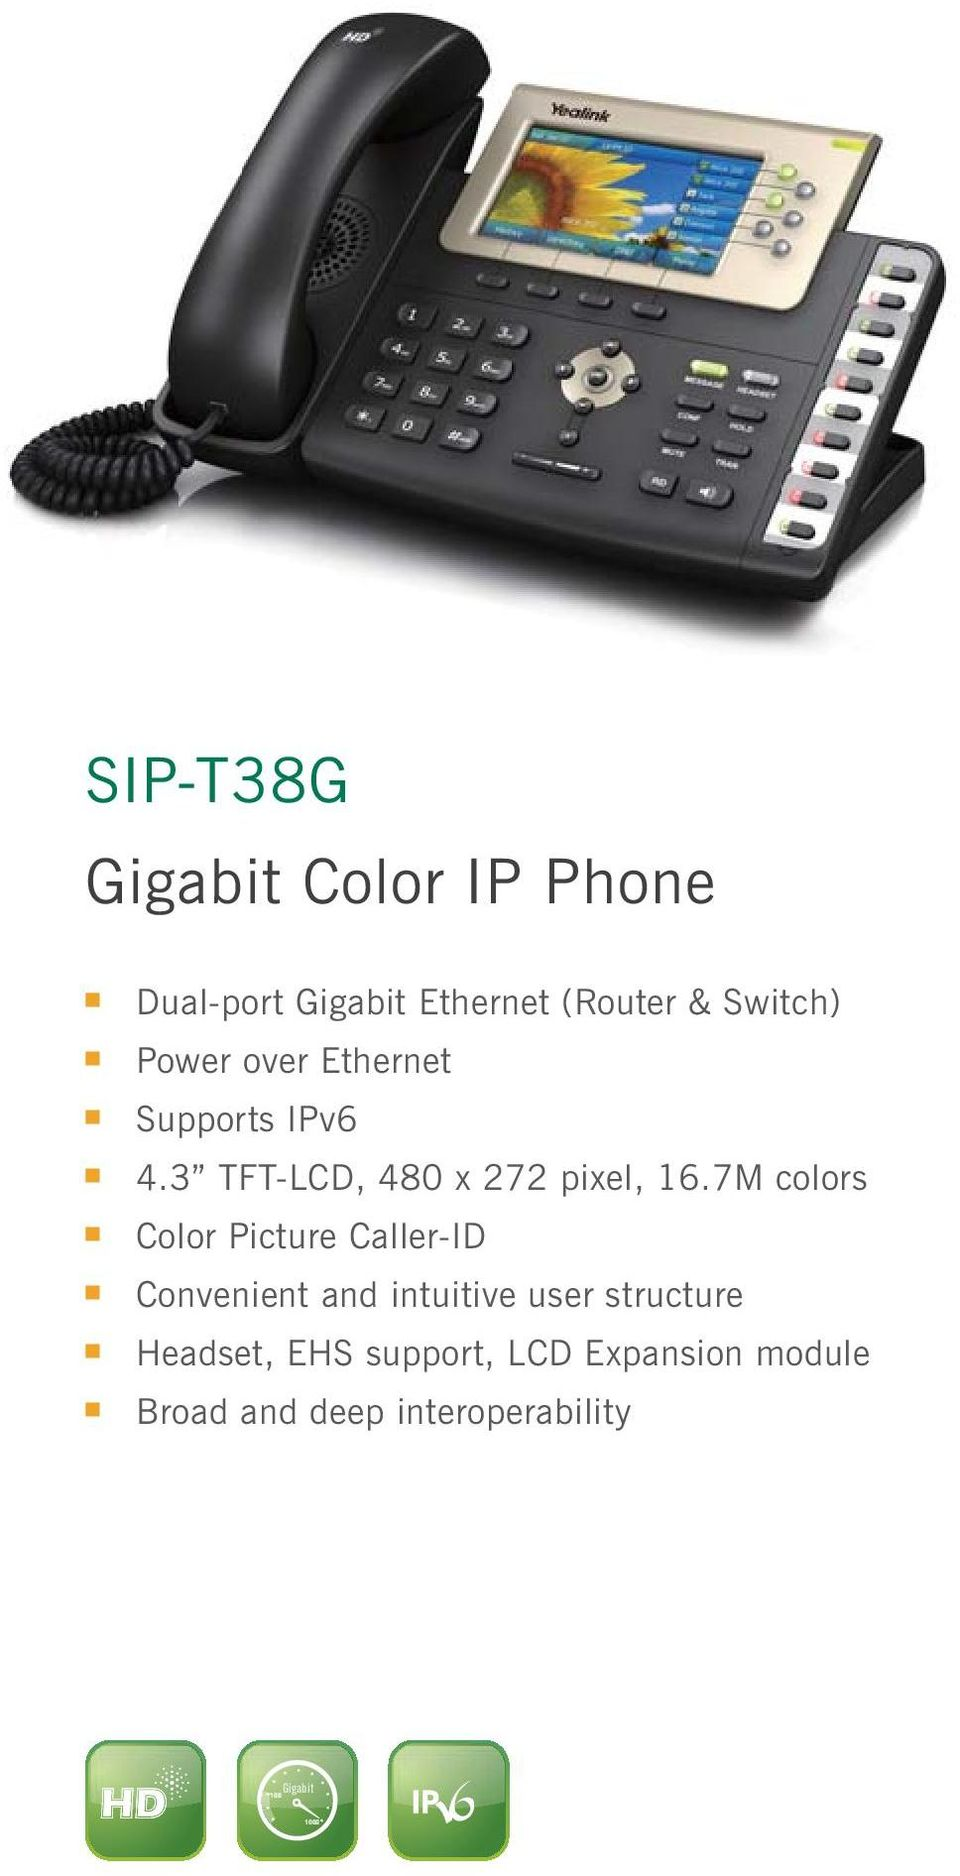 7M colors Color Picture Caller-ID Convenient and intuitive user structure